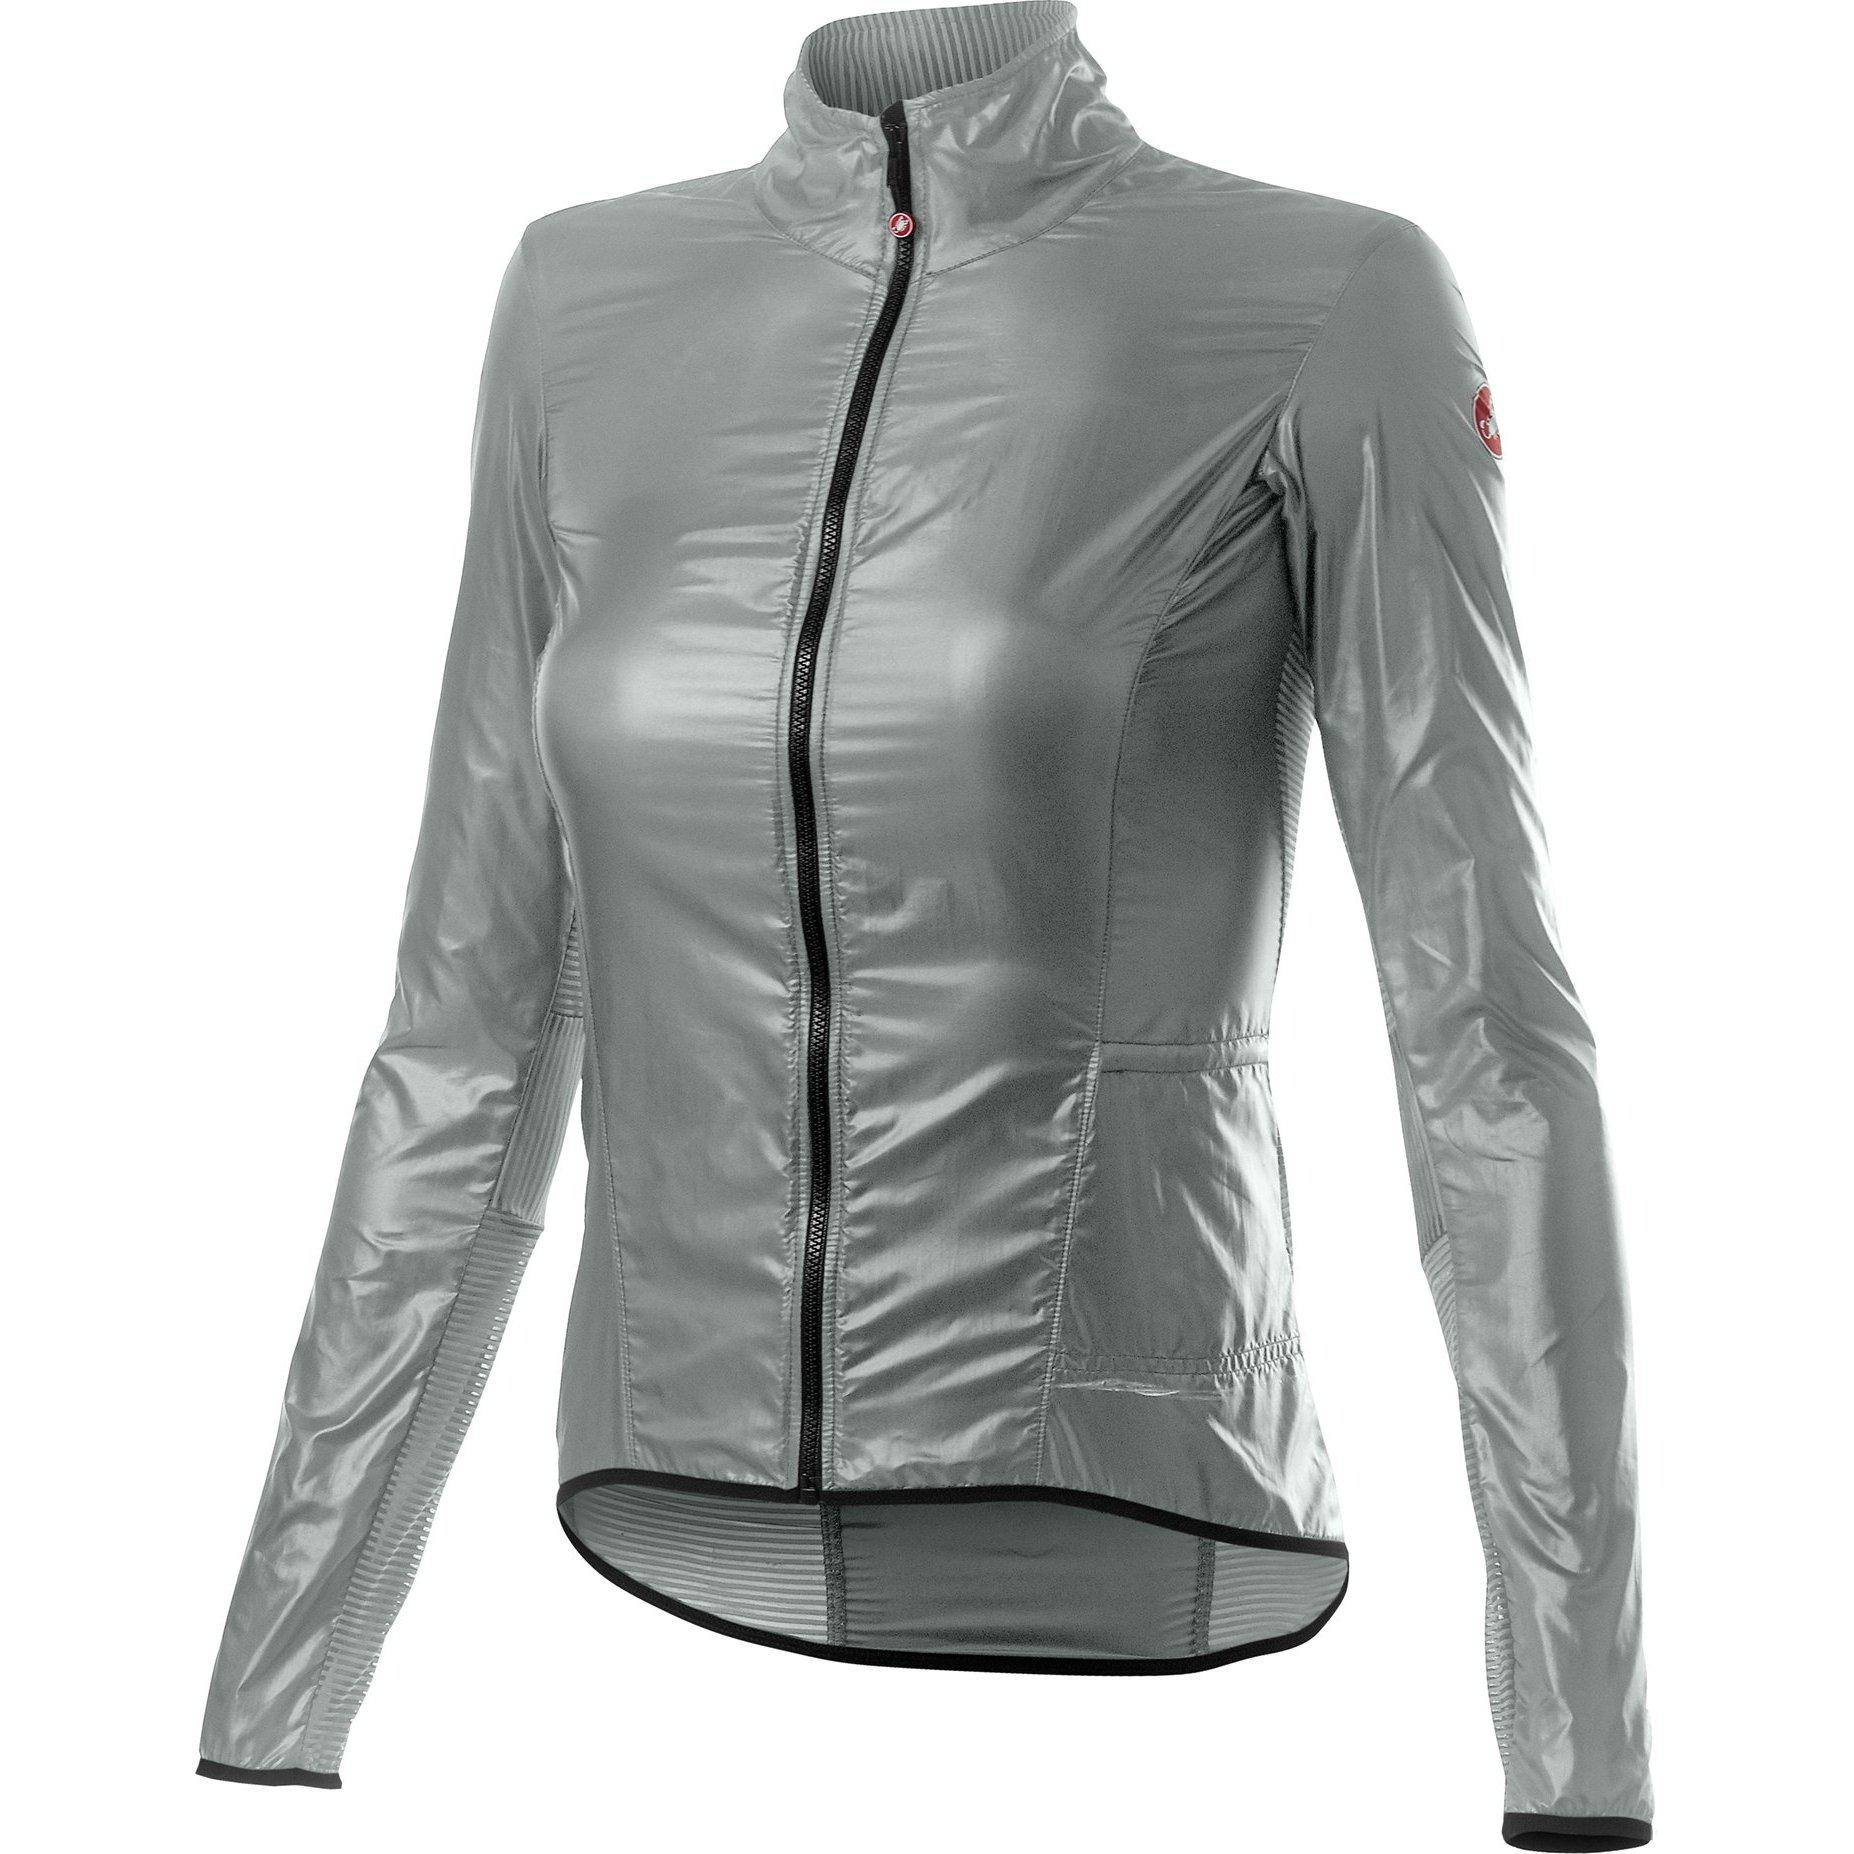 Castelli-Castelli Aria Shell Women's Jacket-Silver Gray-XS-CS200898701-saddleback-elite-performance-cycling